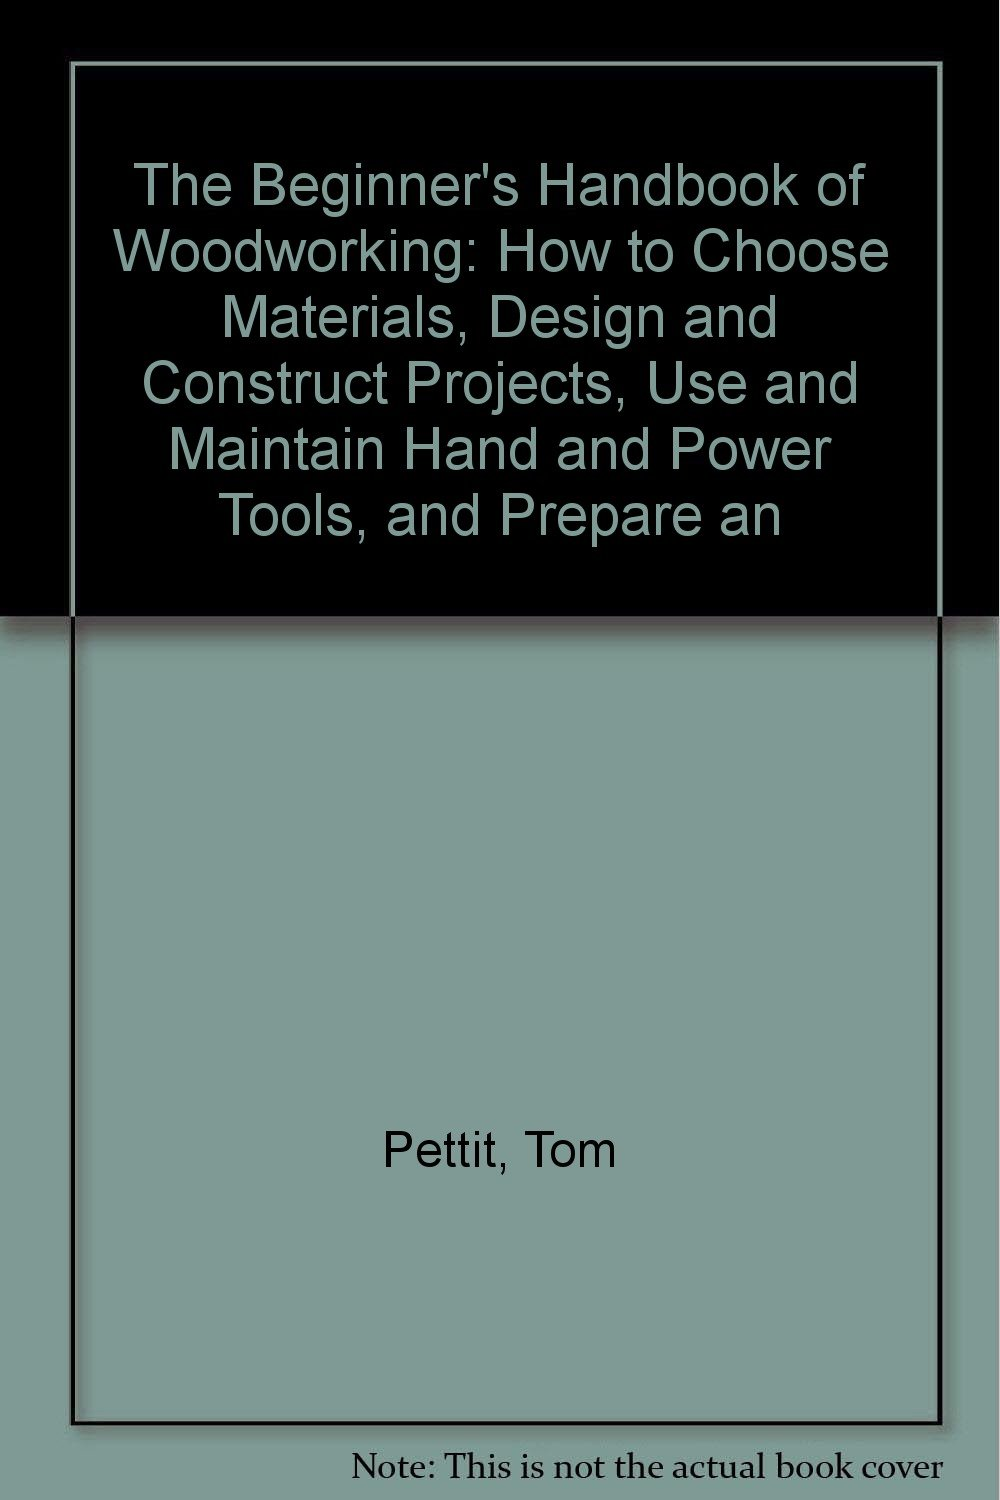 The Beginner's Handbook of Woodworking: How to Choose Materials, Design and Construct Projects, Use and Maintain Hand and Power Tools, and Prepare an